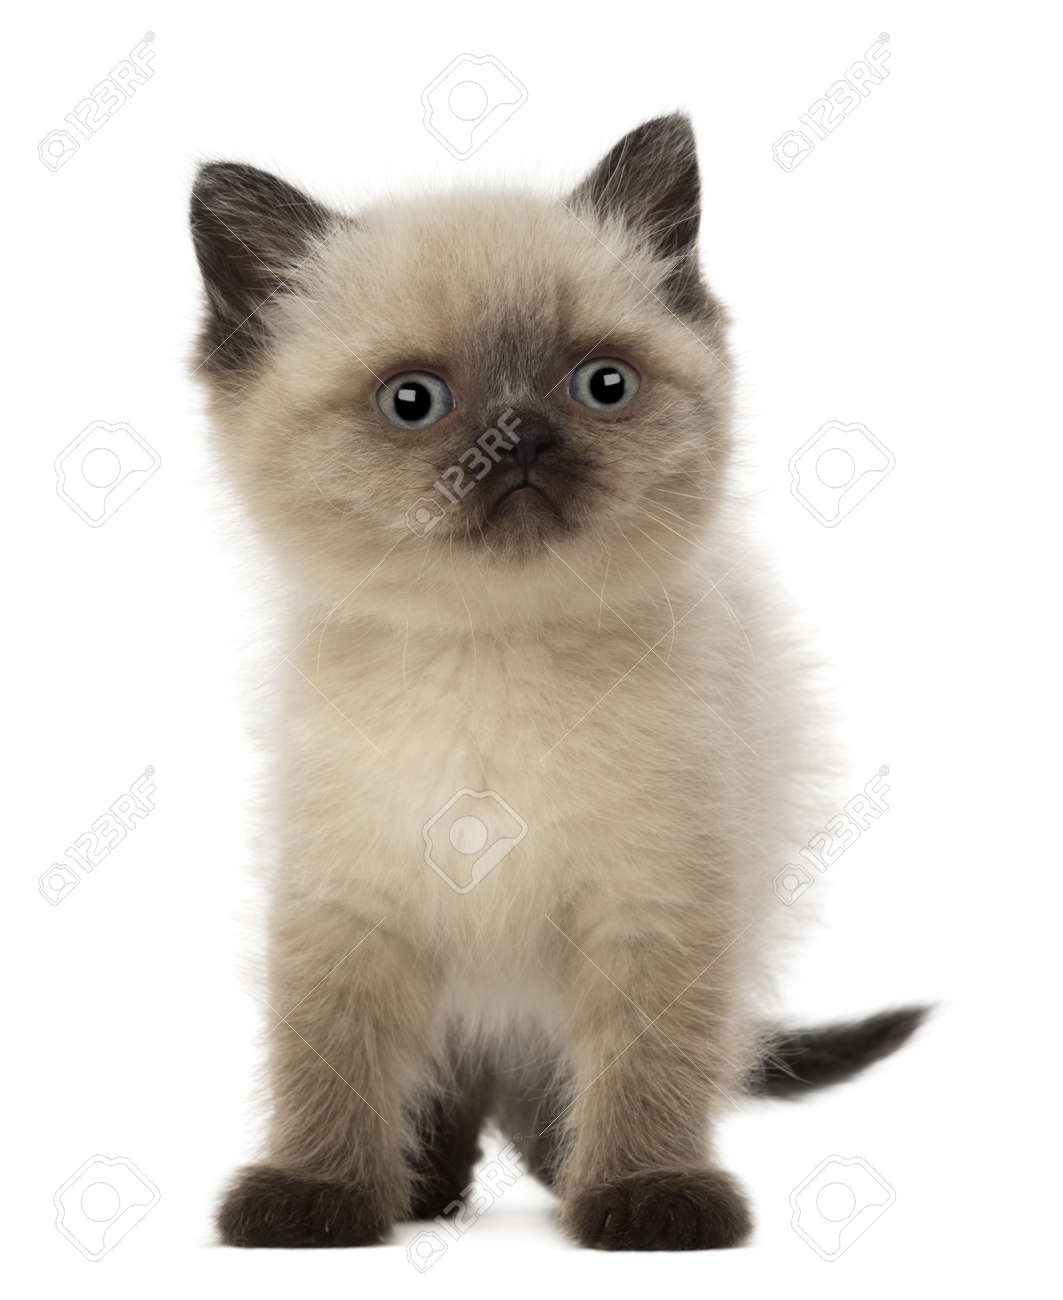 Portrait of British Shorthair Kitten, 5 weeks old, against white background Stock Photo - 15345670